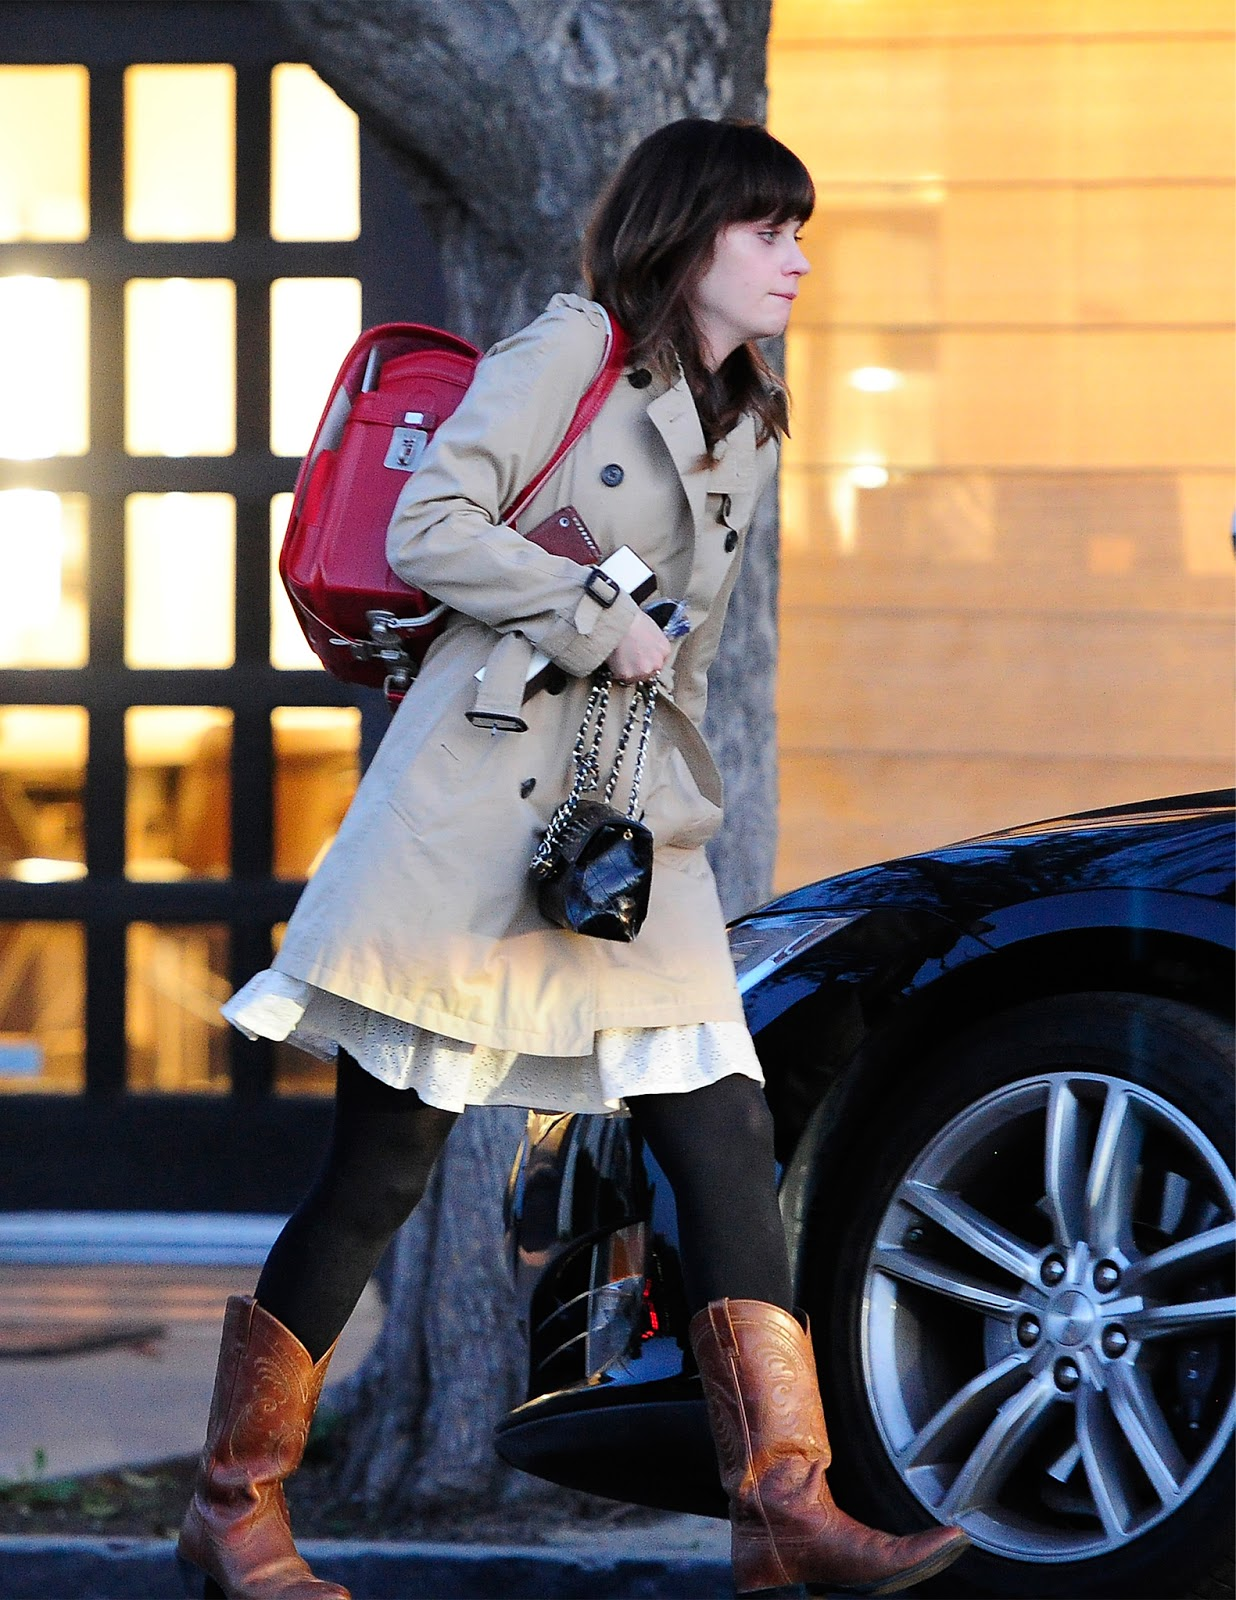 Zooey_Deschanel-Beverly_Hills-CA-19_3_2014-006.jpg